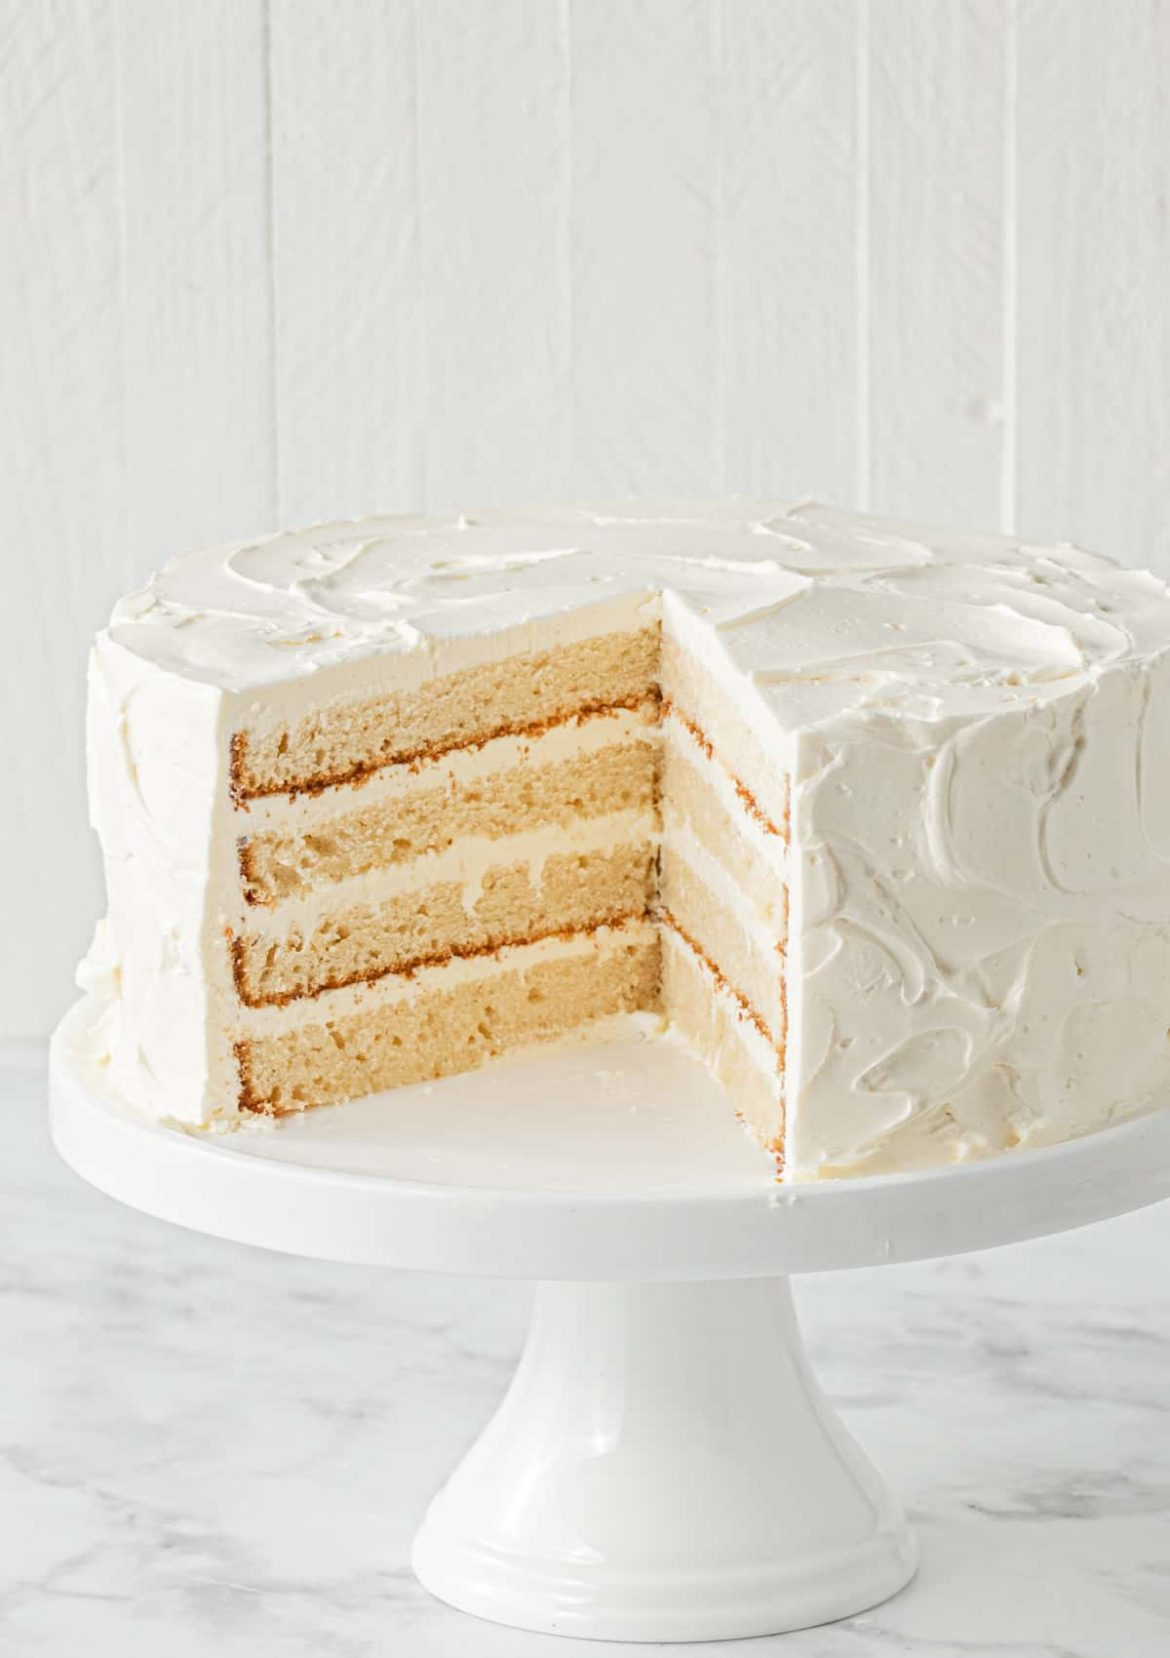 White Chocolate Mud Cake with slice taken out